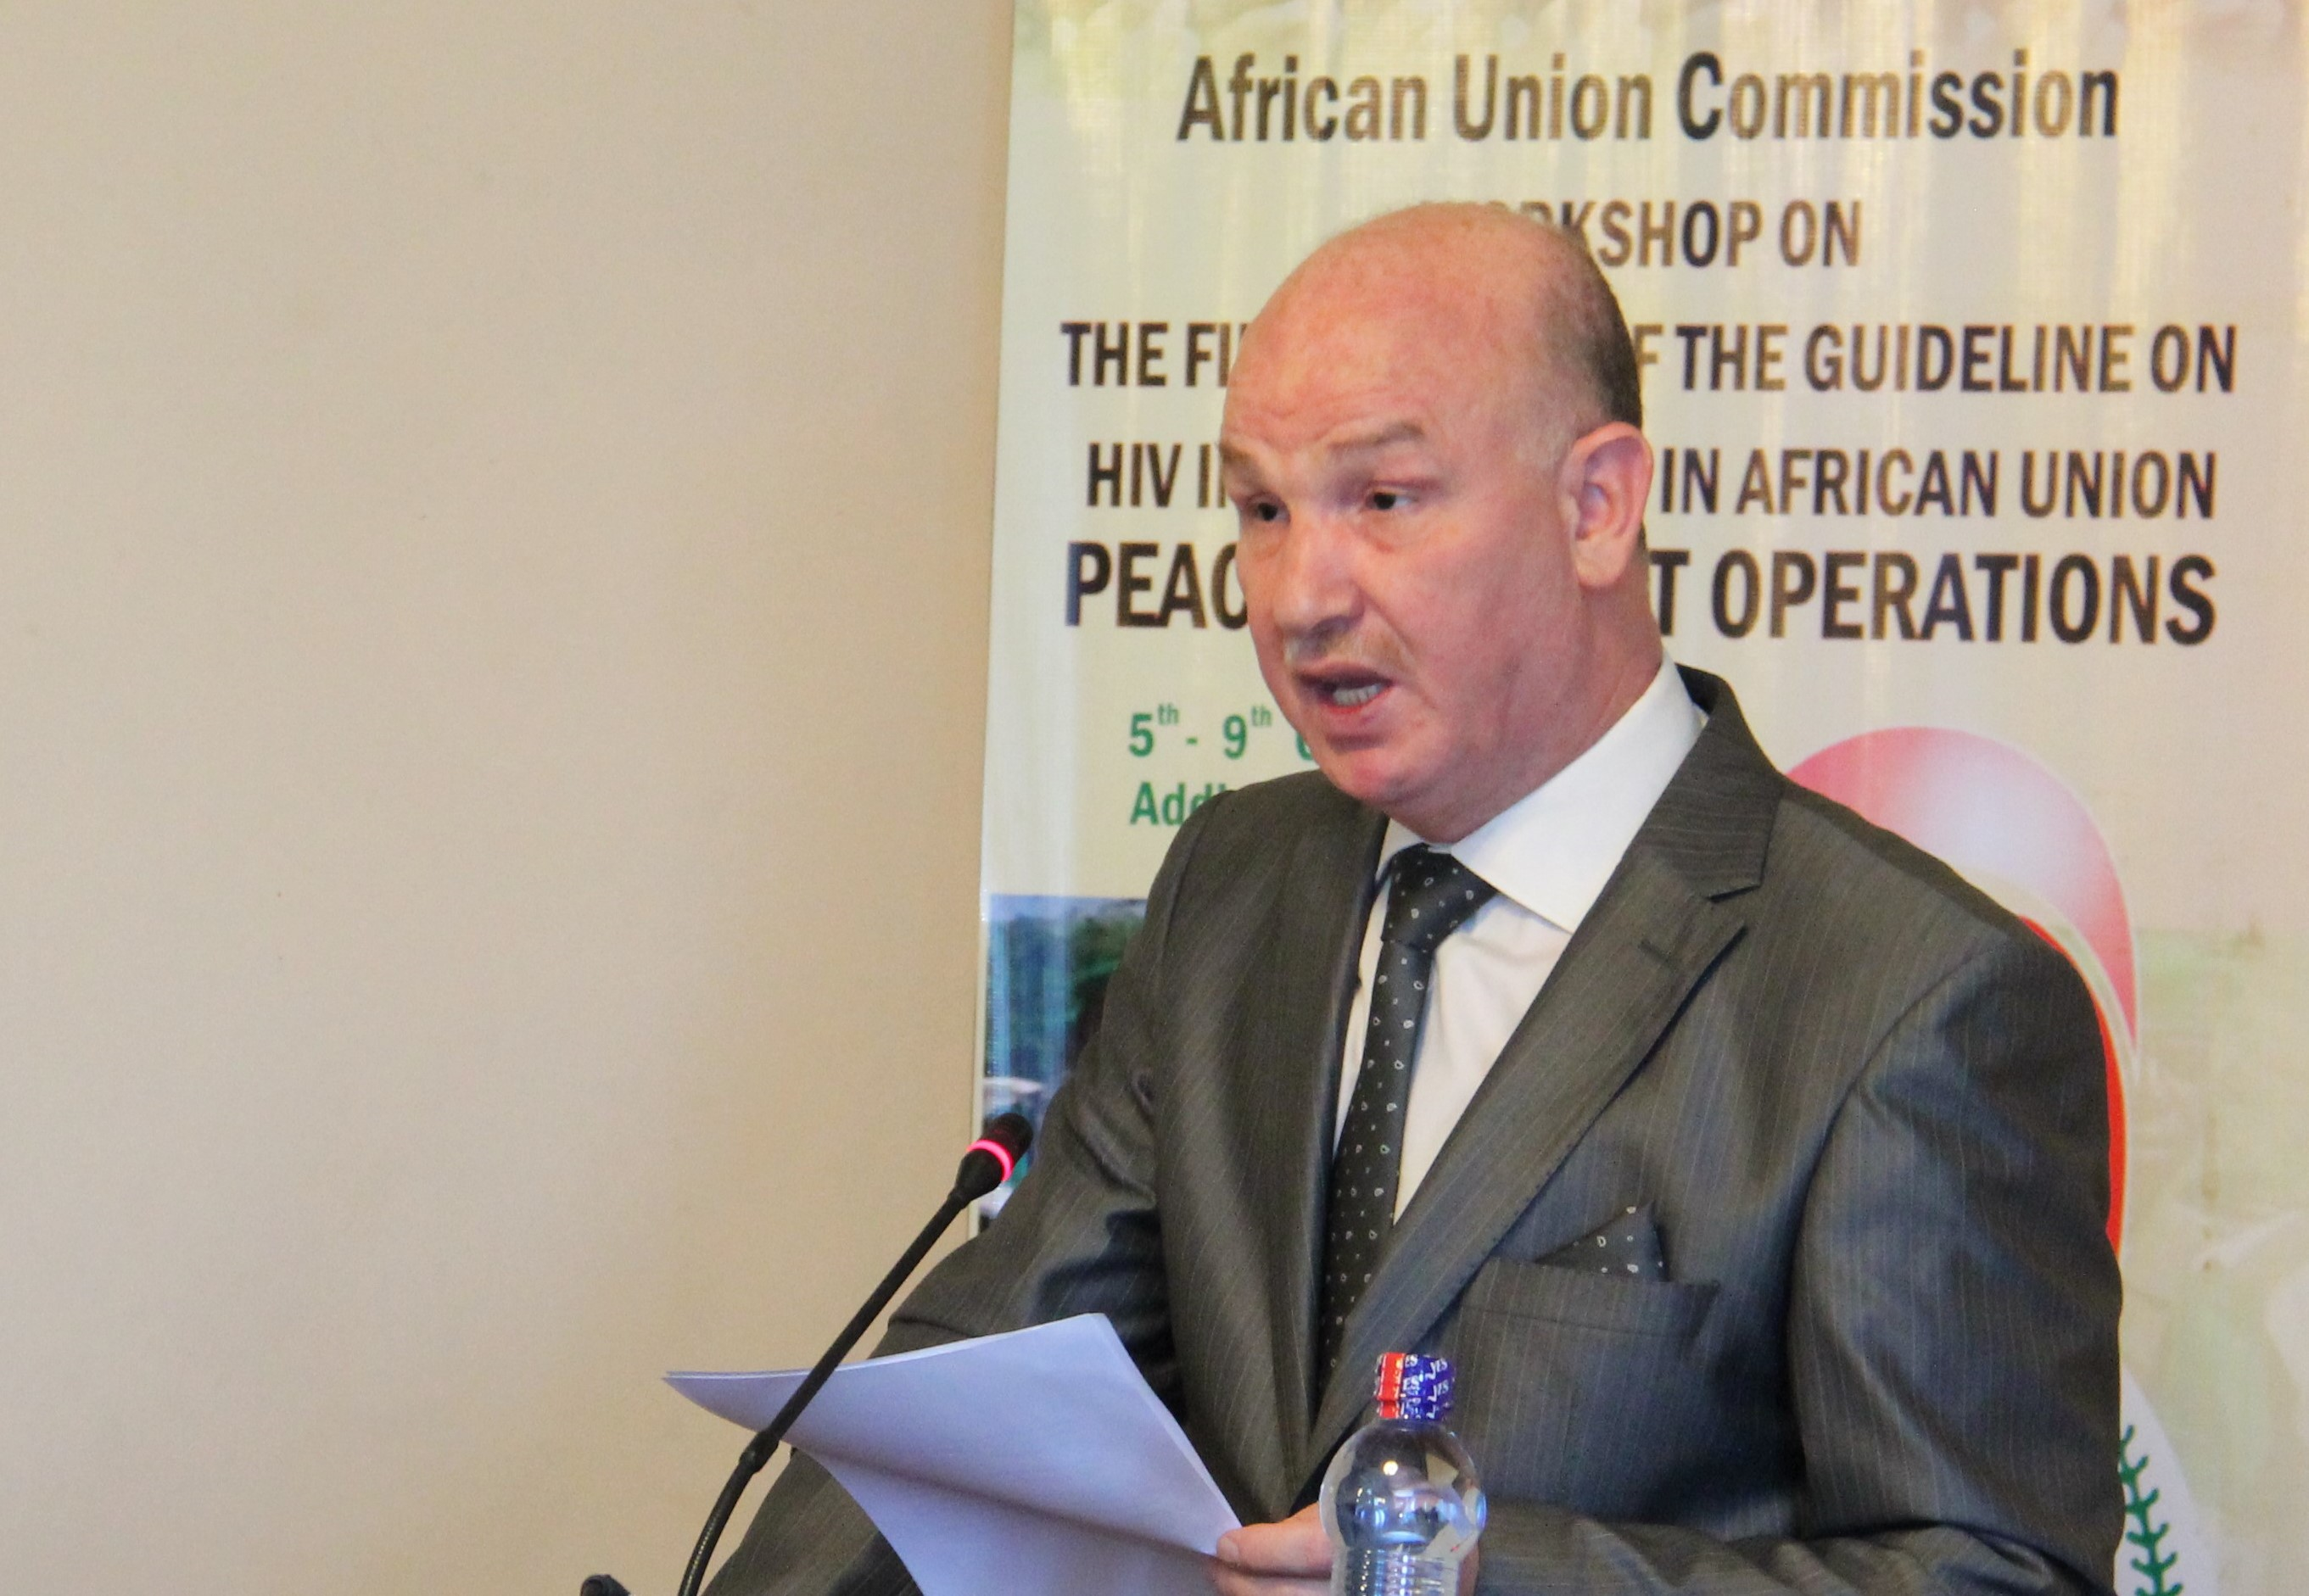 Remarks by H.E. Amb. Smail Chergui, AU Commissioner for Peace and Security, at workshop on finalization of guidelines on HIV Interventions in AU PSOs